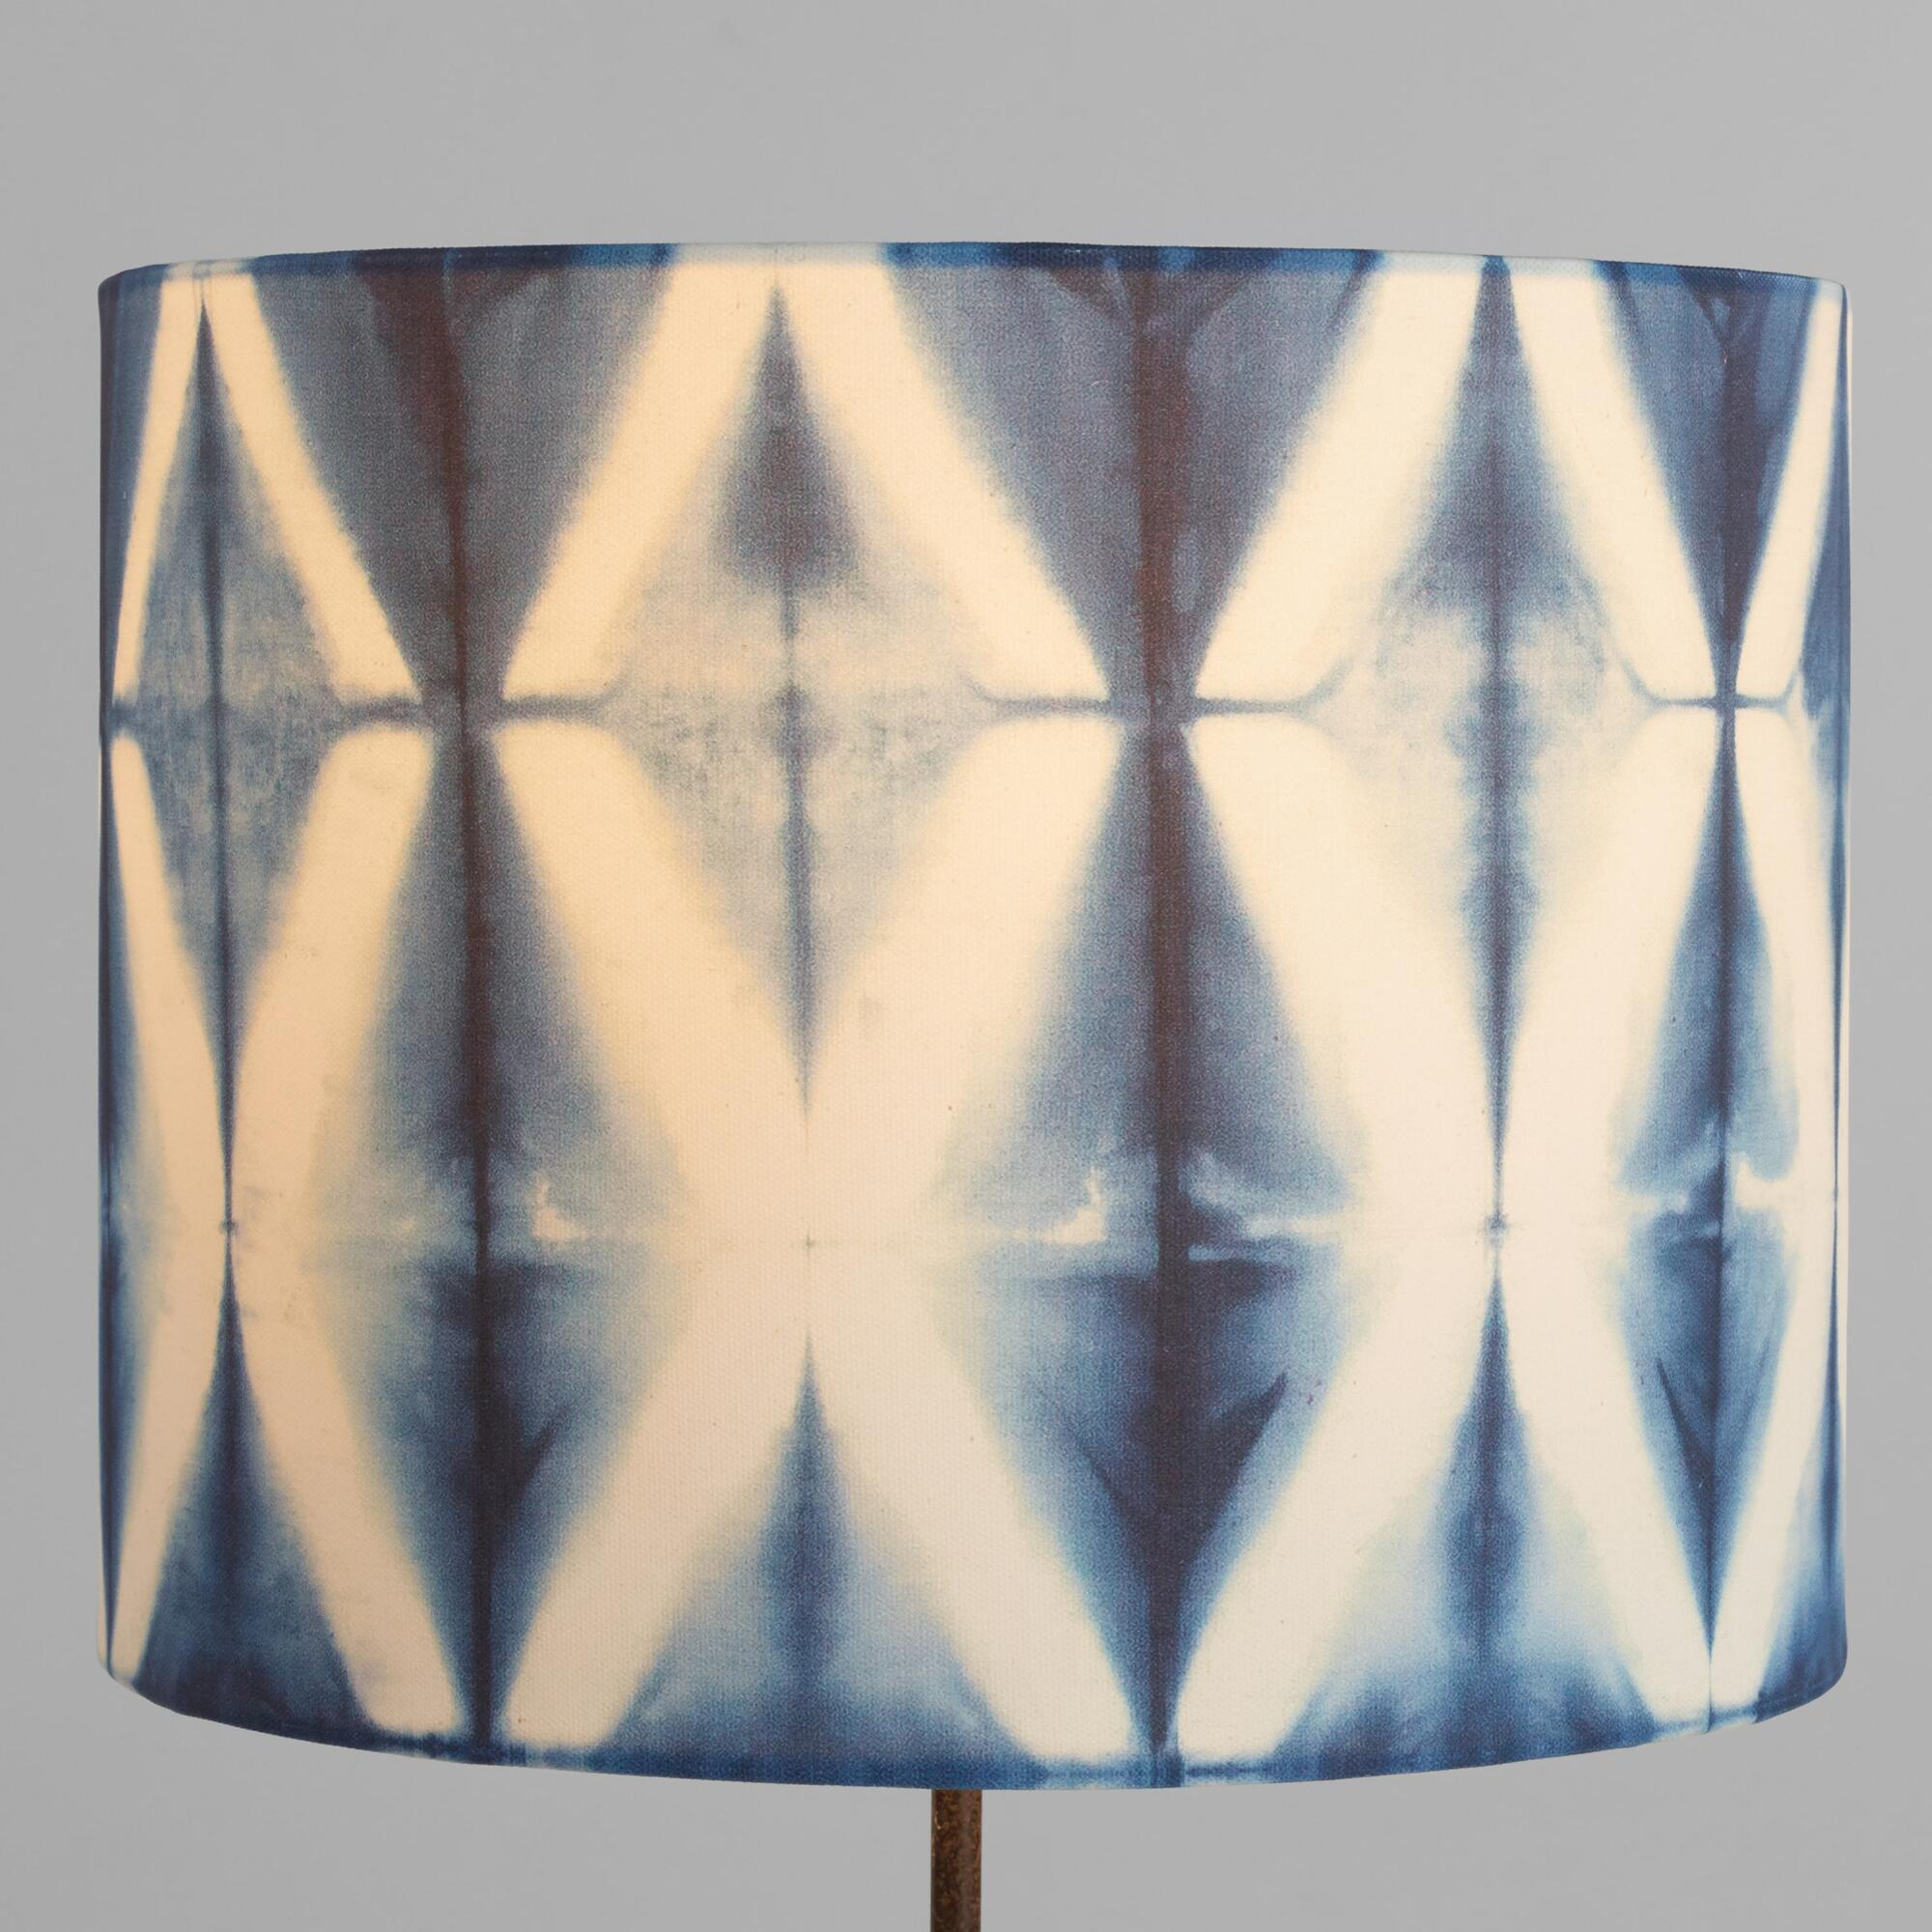 table top lamps unique lamp shades world market iipsrv fcgi miniature accent indigo shibori print drum shade eos vita clearance sectionals antique folding side outside patio